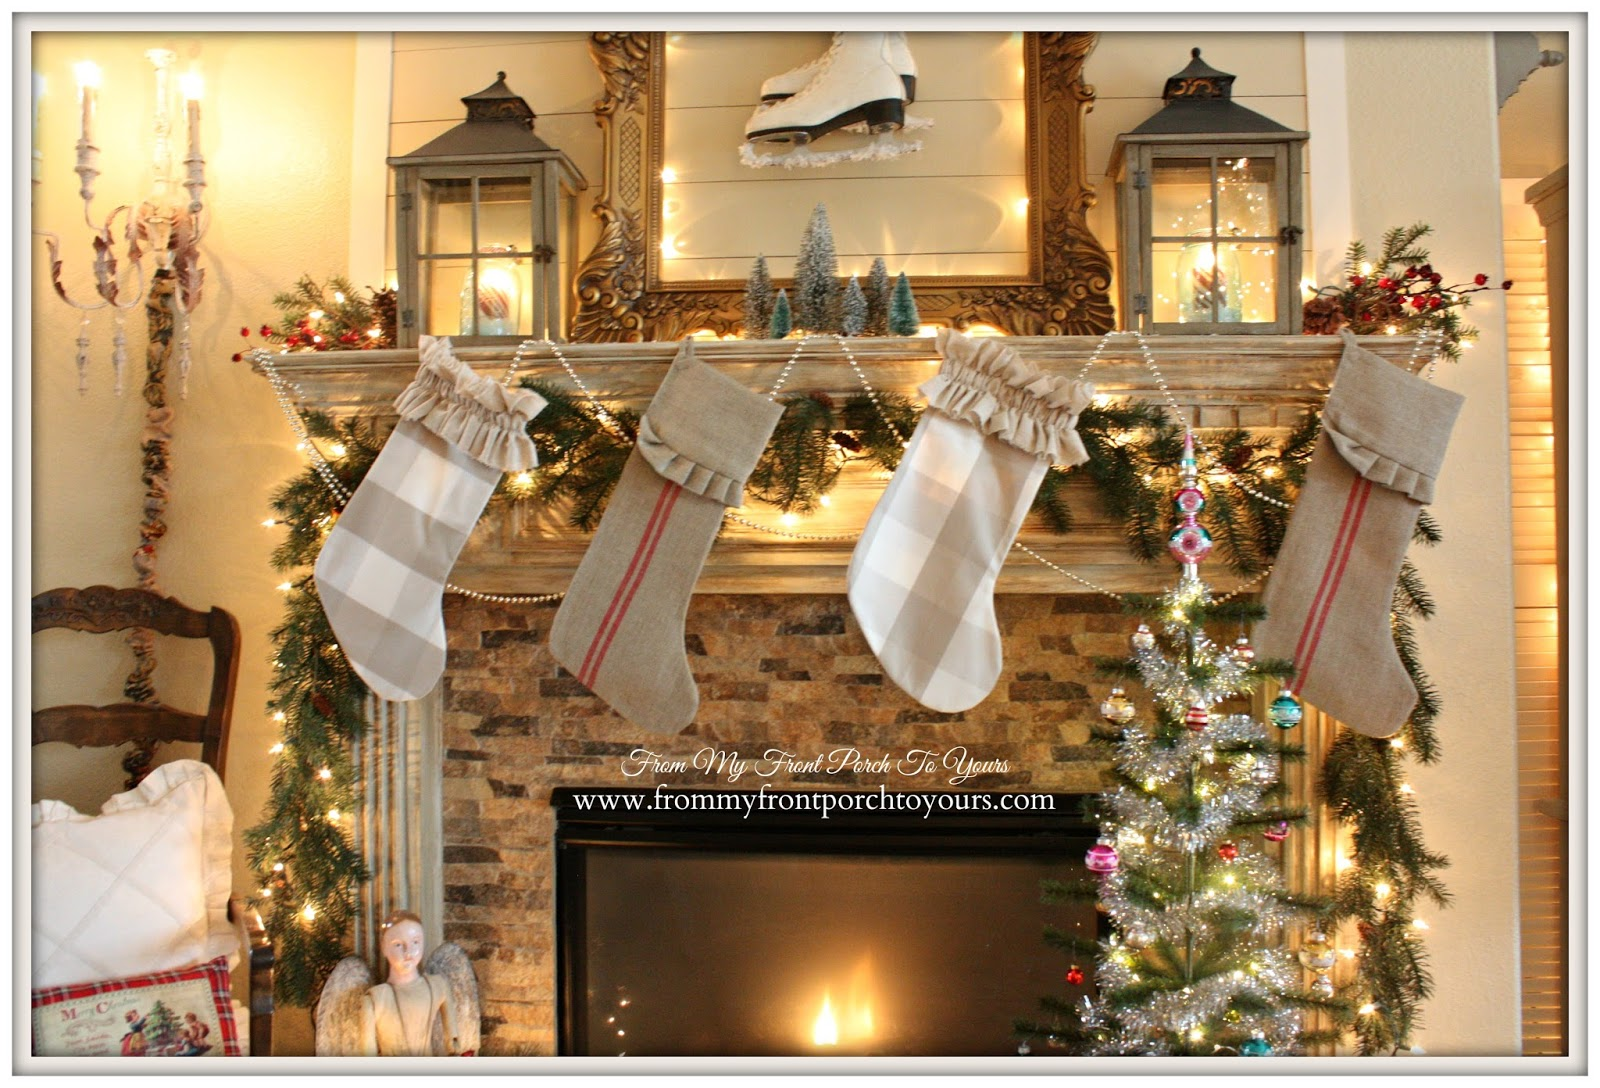 Grain Sack Christmas Stockings-DIY Buffalo Check Christmas Stockings-French Farmhouse Vintage Christmas Mantel 2014- From My Front Porch To Yours